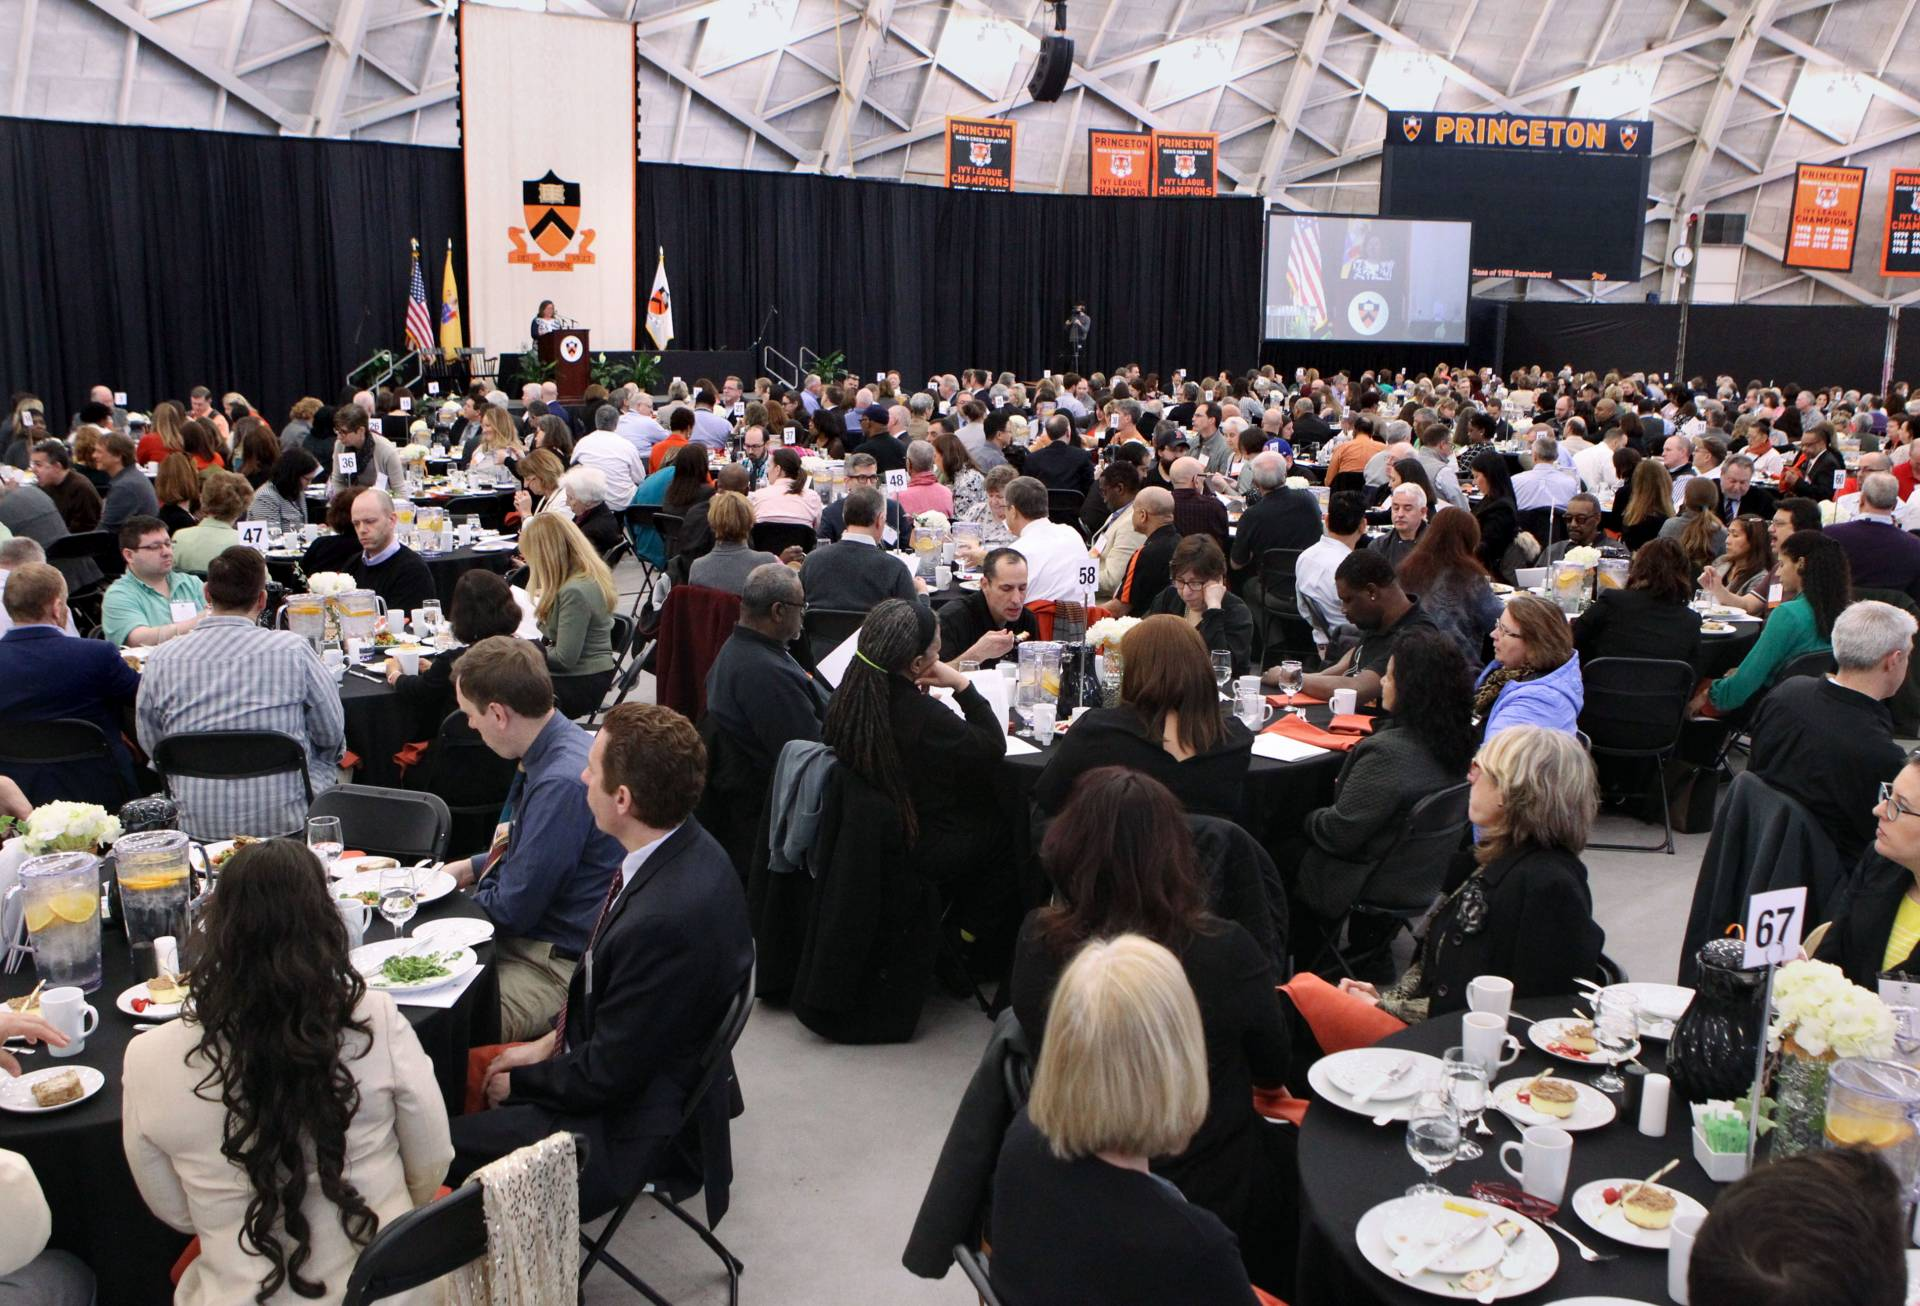 Staff recognition luncheon in Jadwin Gym